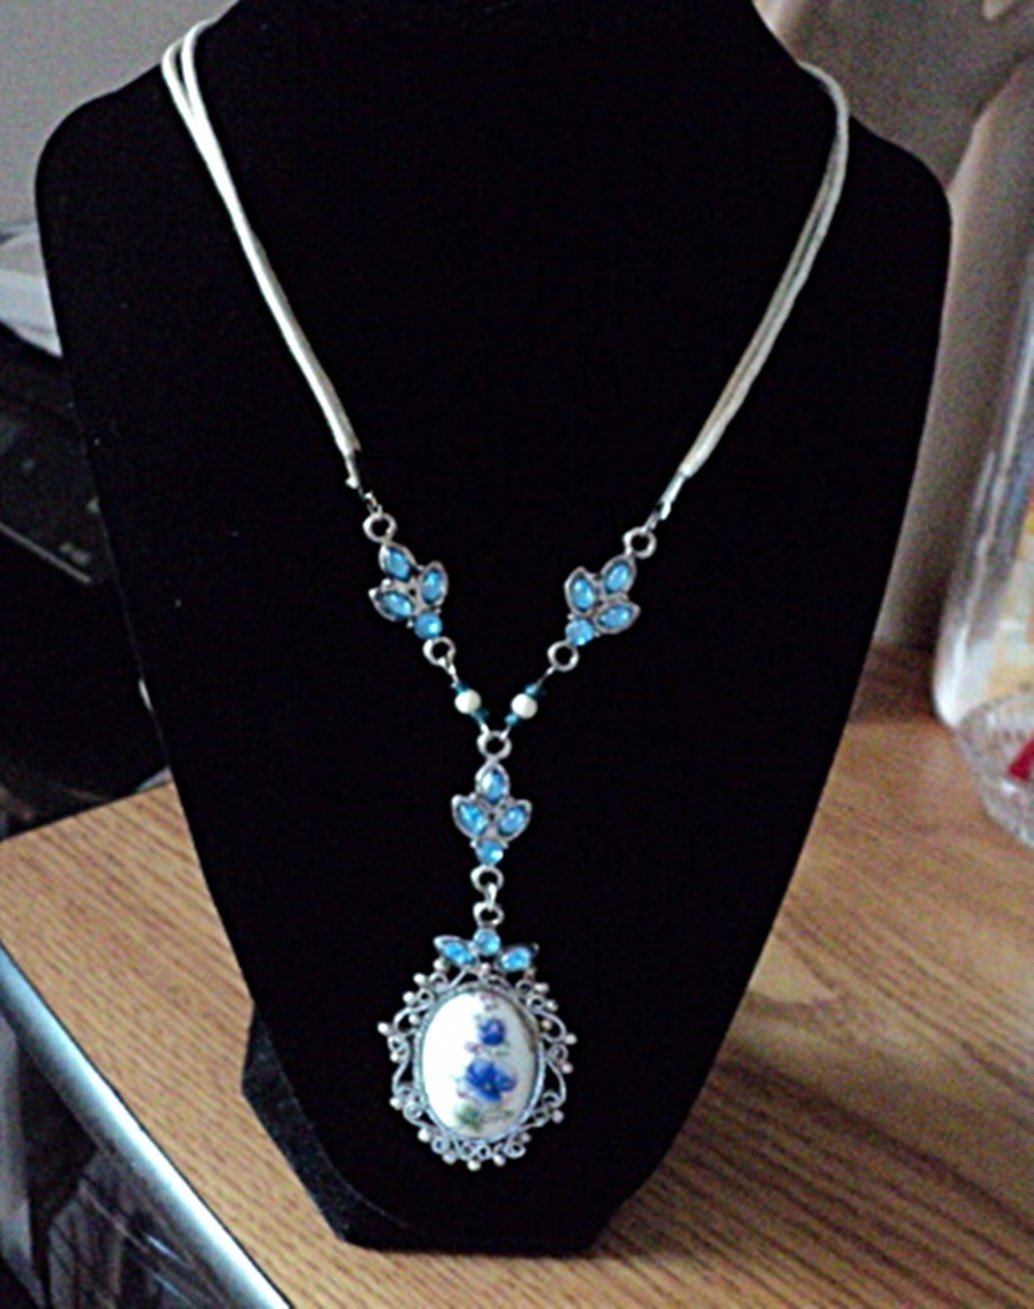 Vintage Blue Stones and White Floral Cameo Necklace #00045